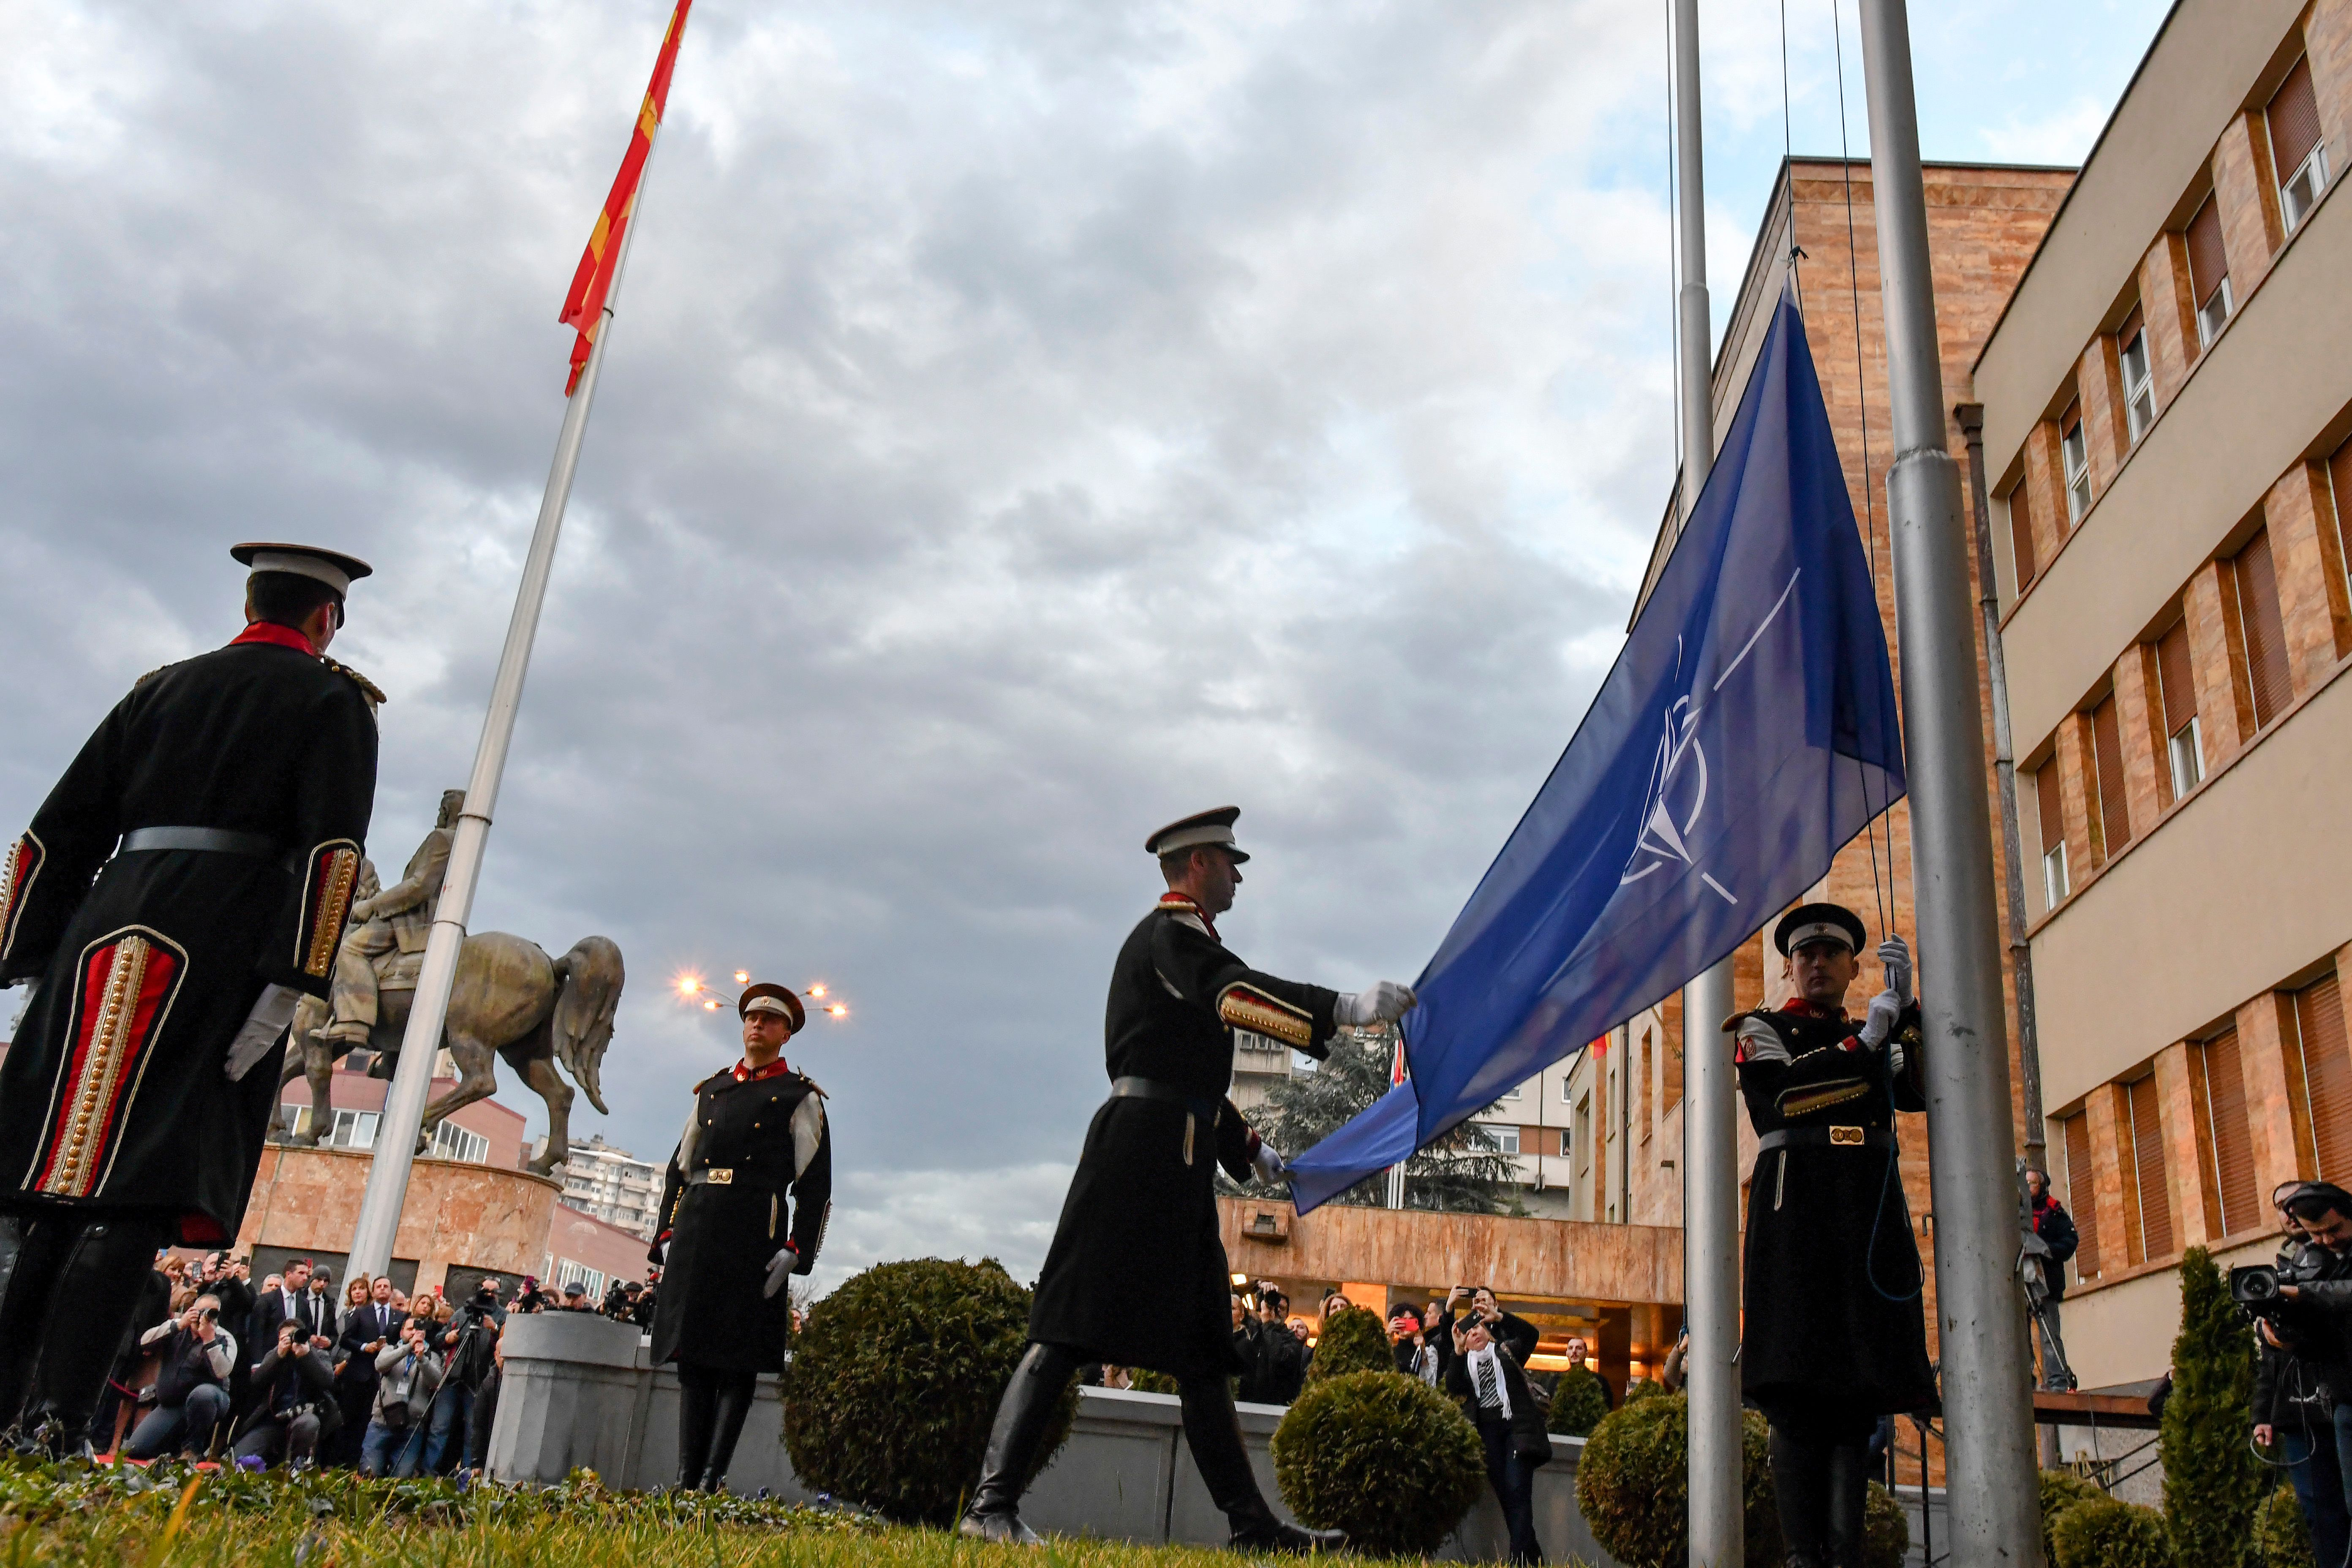 Honor guard members raise the NATO flag during a ceremony in front of the parliament building in Skopje, North Macedonia, on Feb. 11, 2020, after the lawmakers ratified the NATO accession agreement. (Robert Atanasovski/AFP via Getty Images)